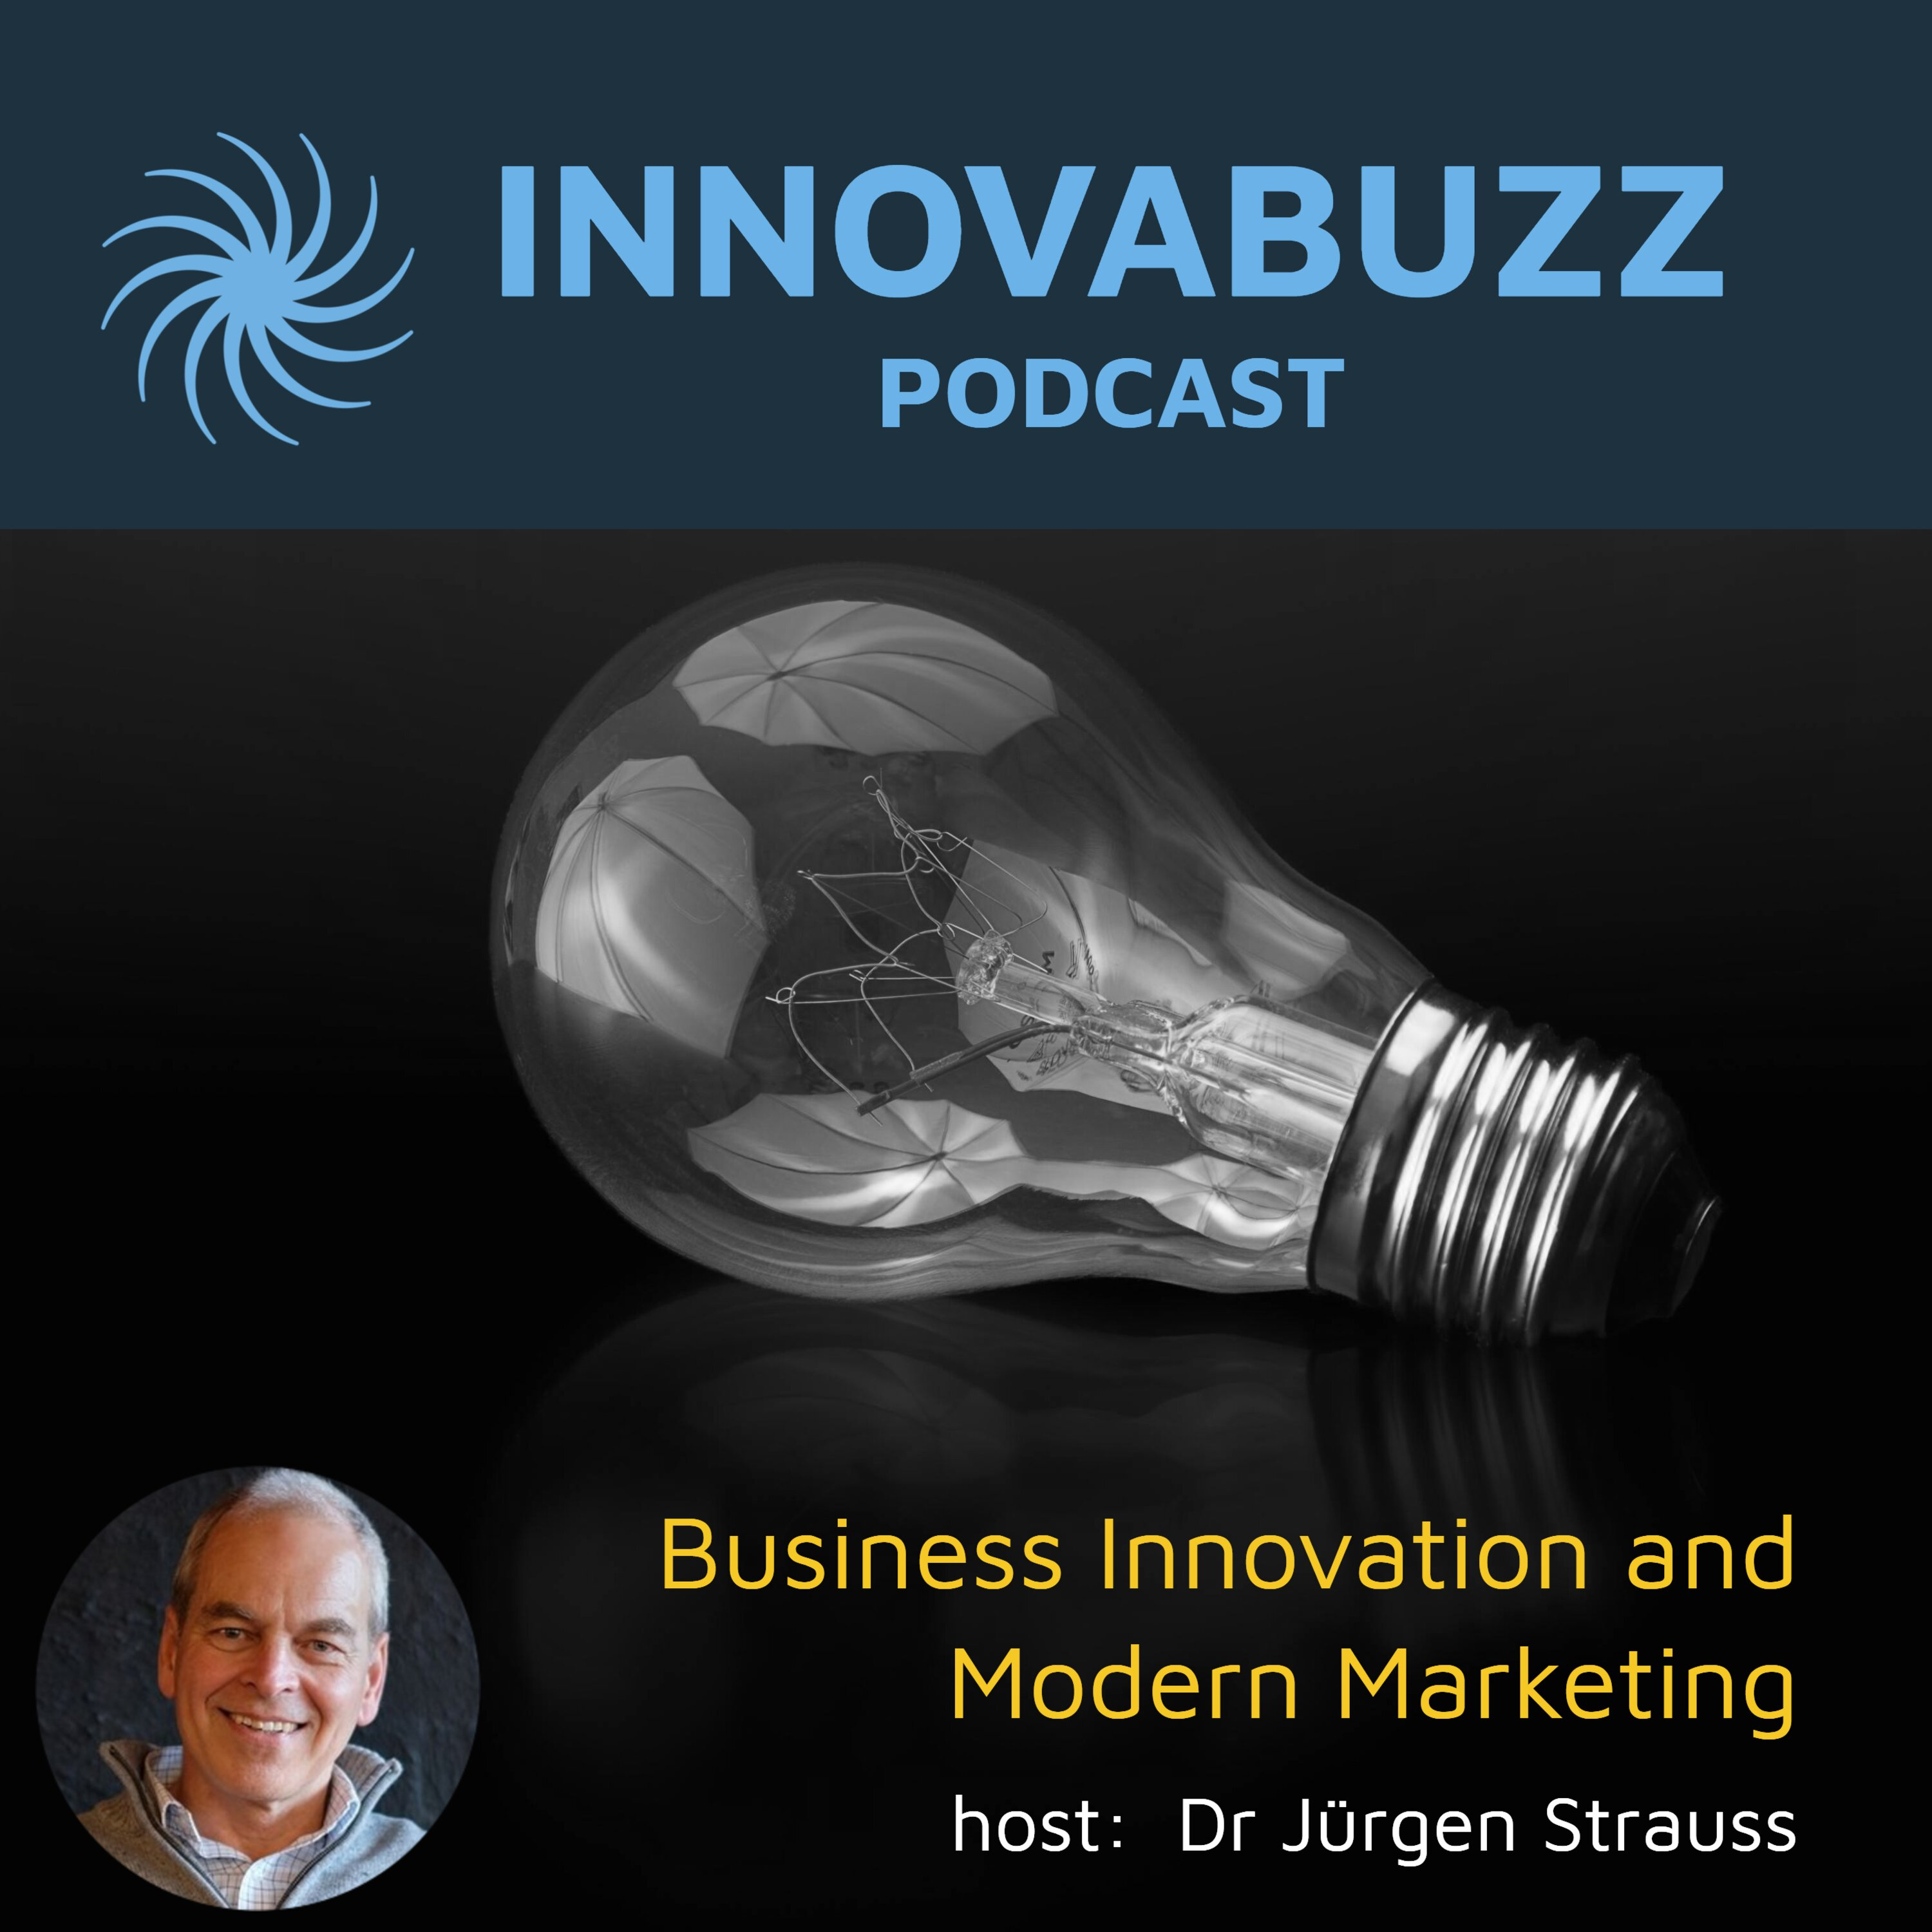 Pappyon, Real Connections, Better Business - InnovaBuzz 344